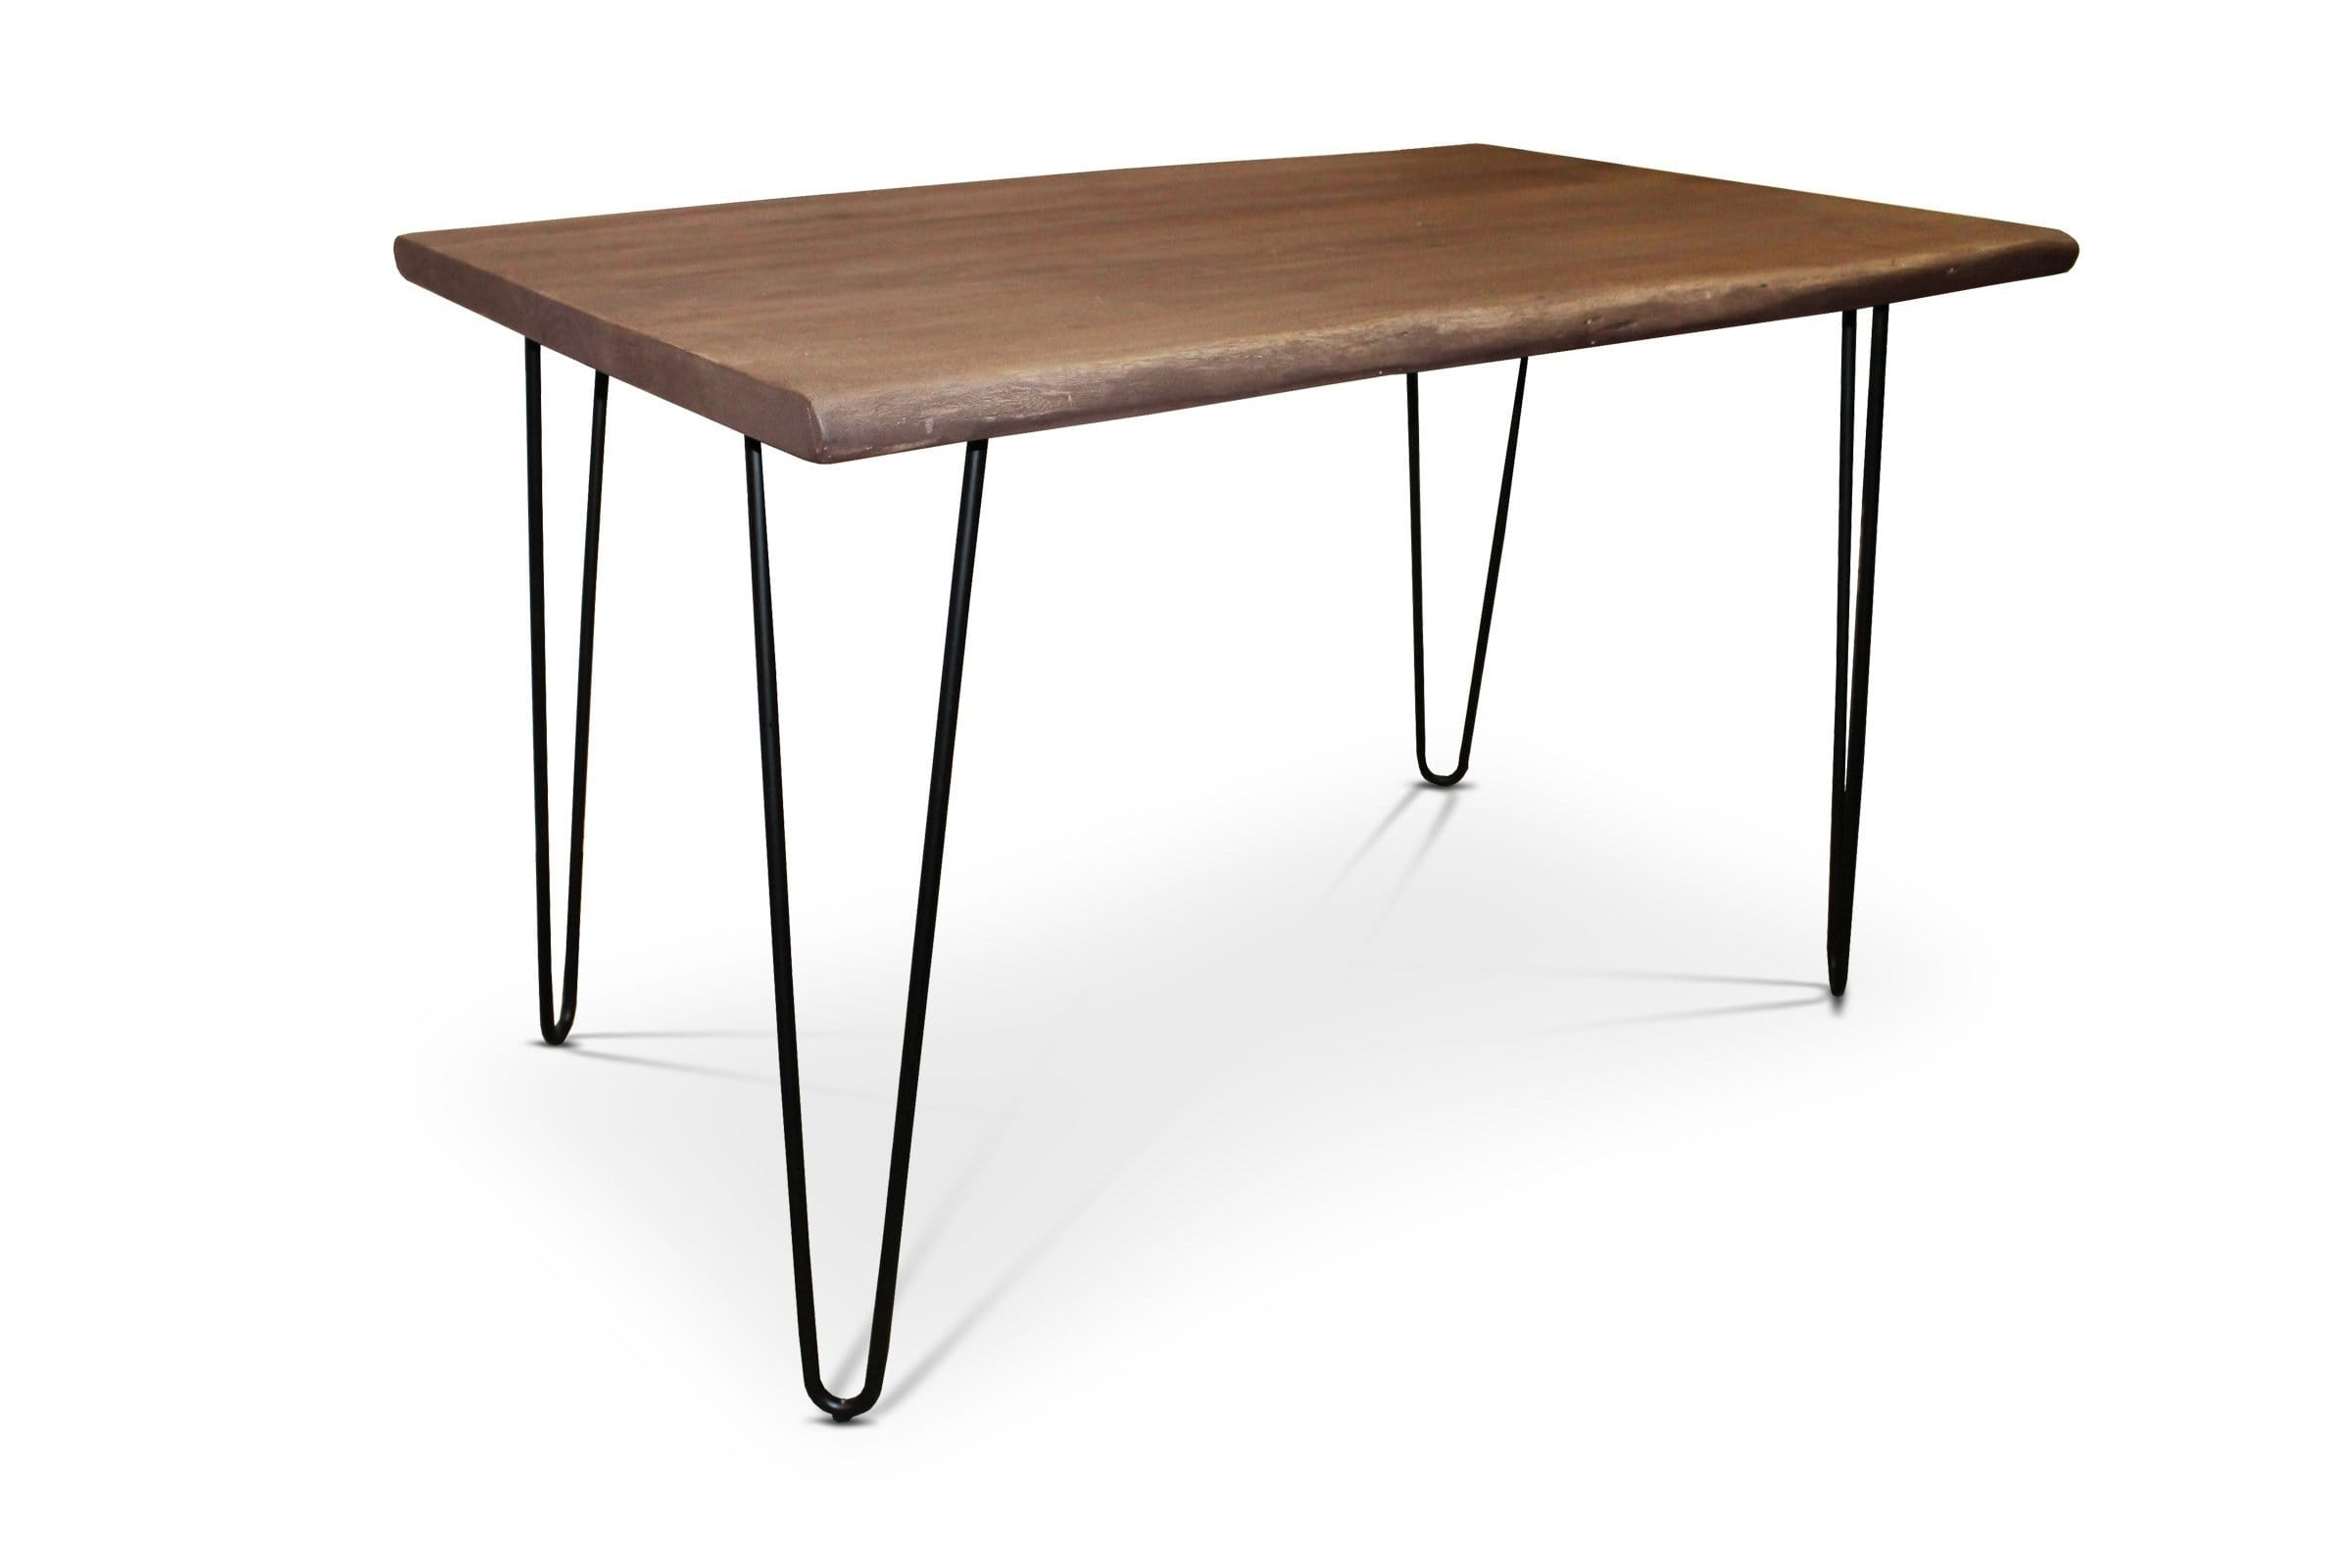 Angeles Crest Live Edge Dining Table NATURAL - Modern Dining Tables Sold by Apt2B